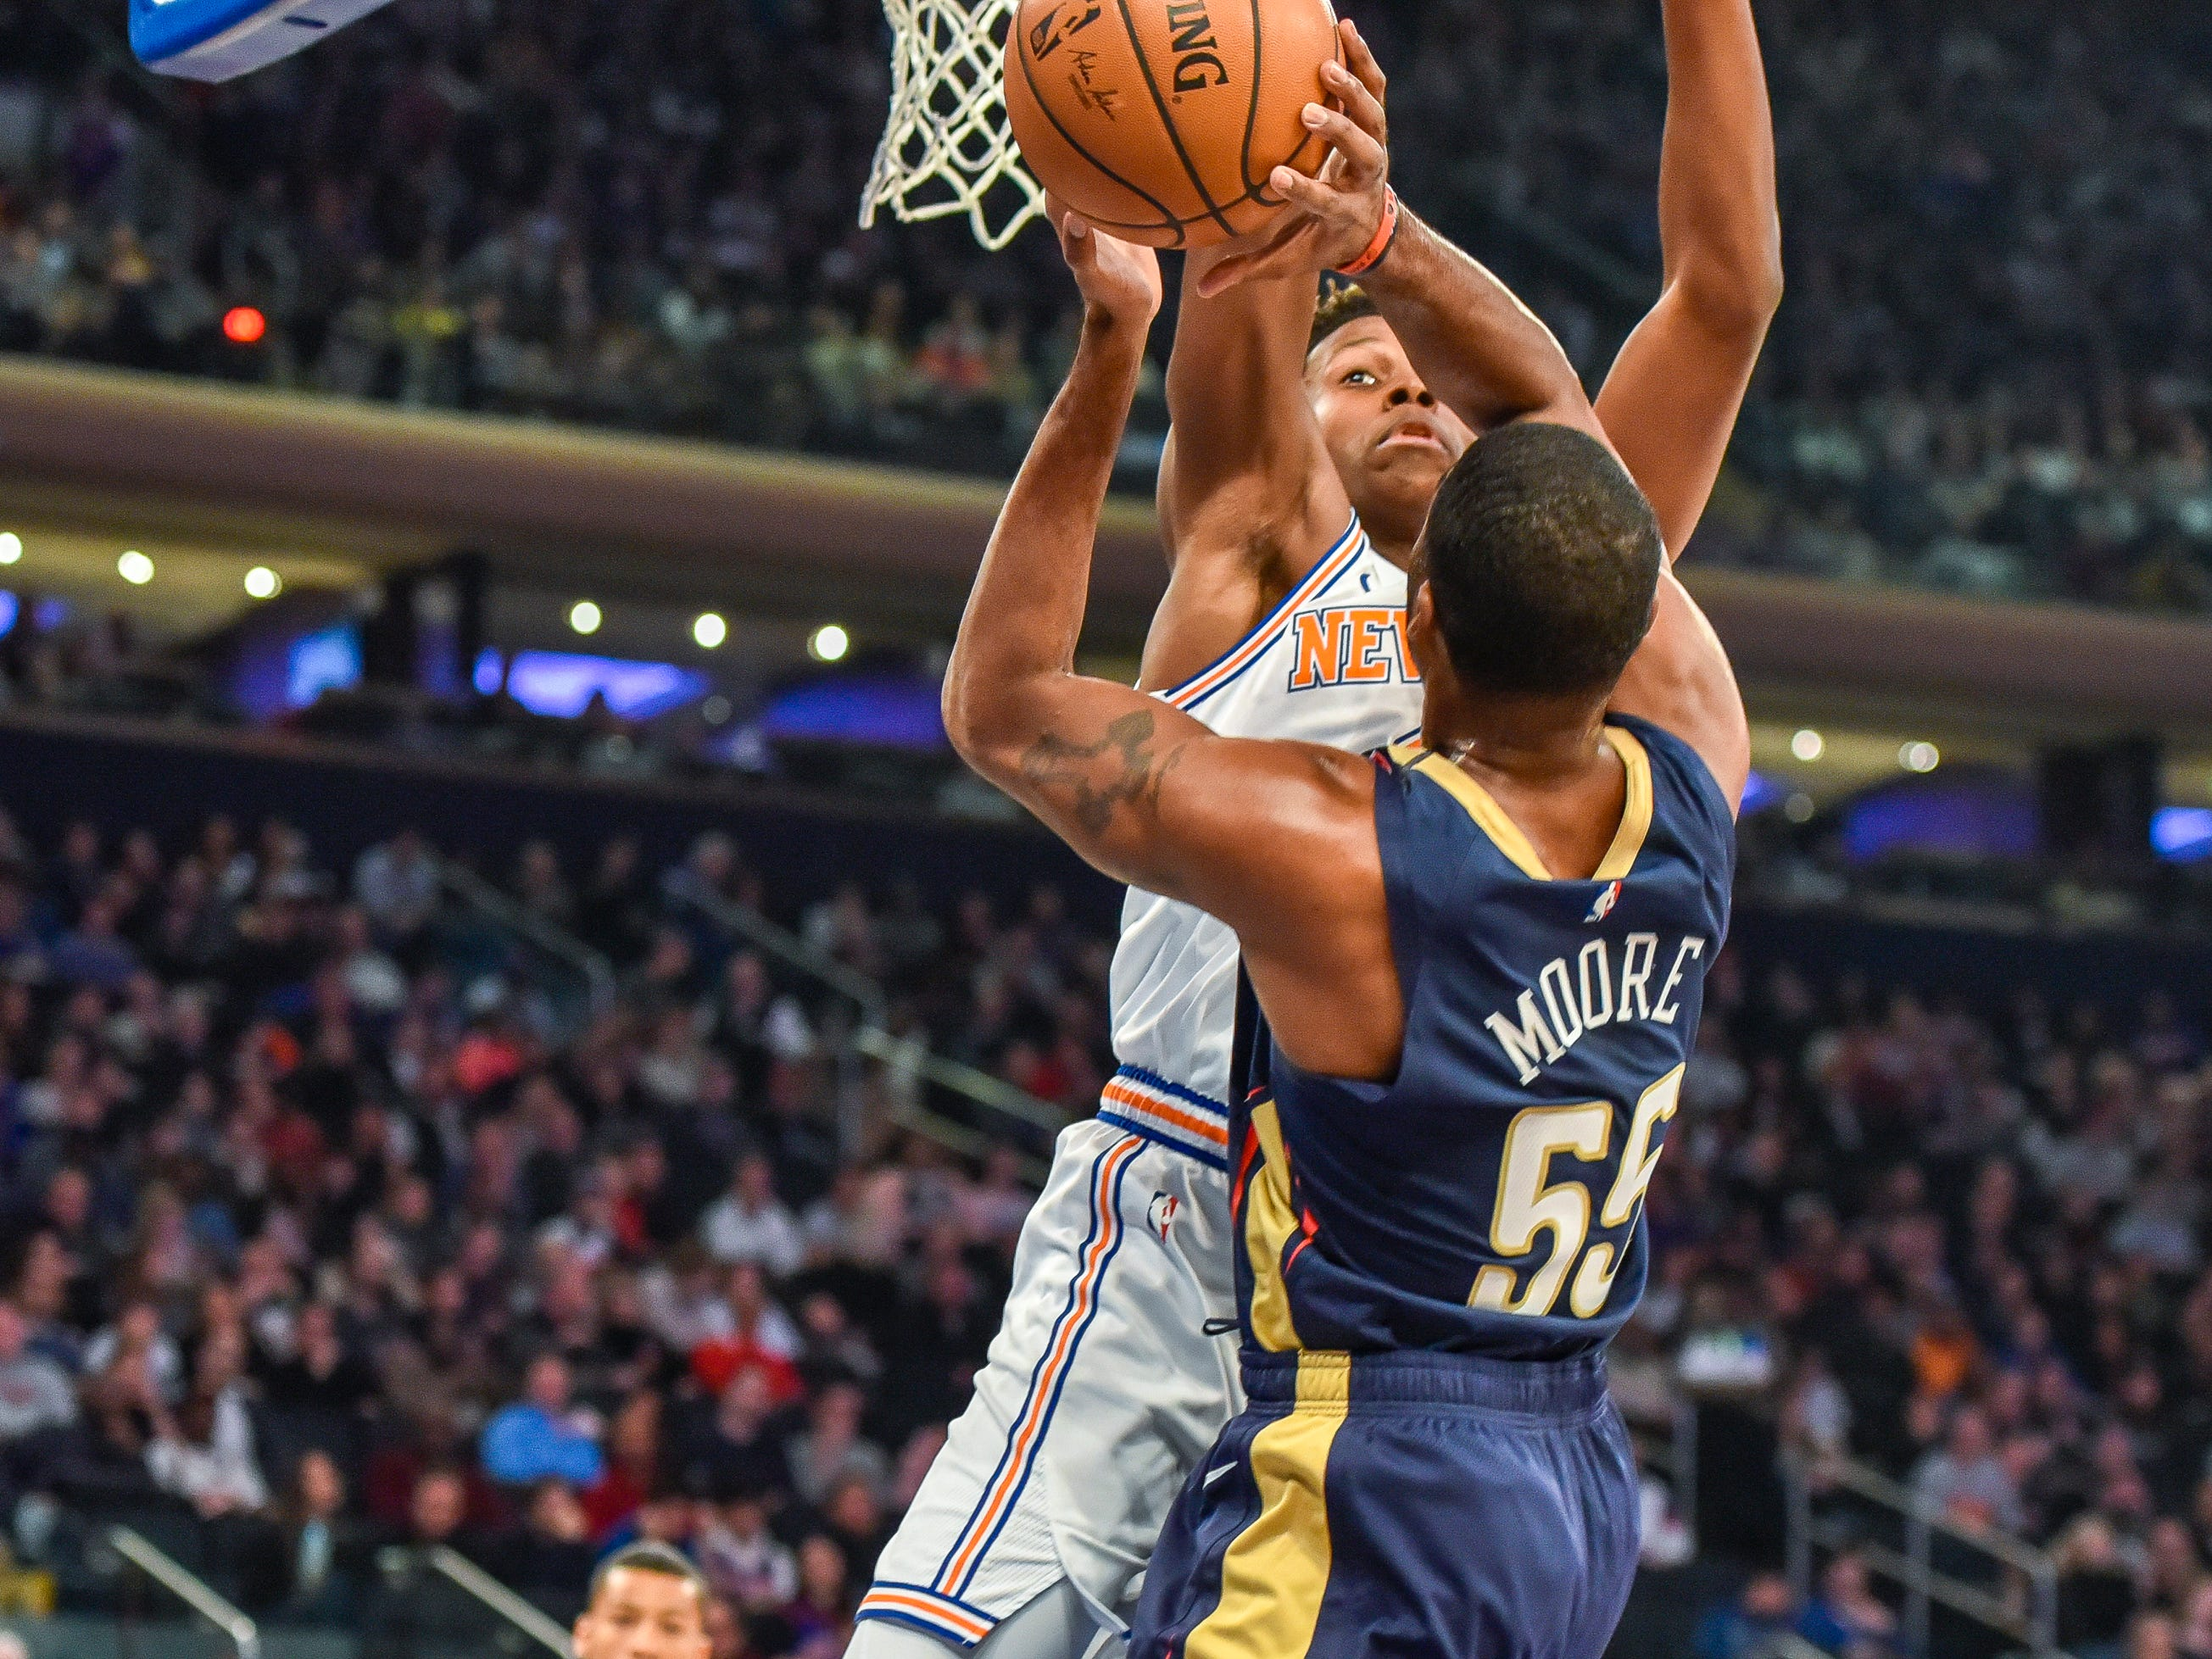 New York Knicks guard Frank Ntilikina (11) slaps away a shot-attempt of New Orleans Pelicans guard E'Twaun Moore (55) in the first quarter of an NBA basketball game, Friday, Nov. 23, 2018, in New York.